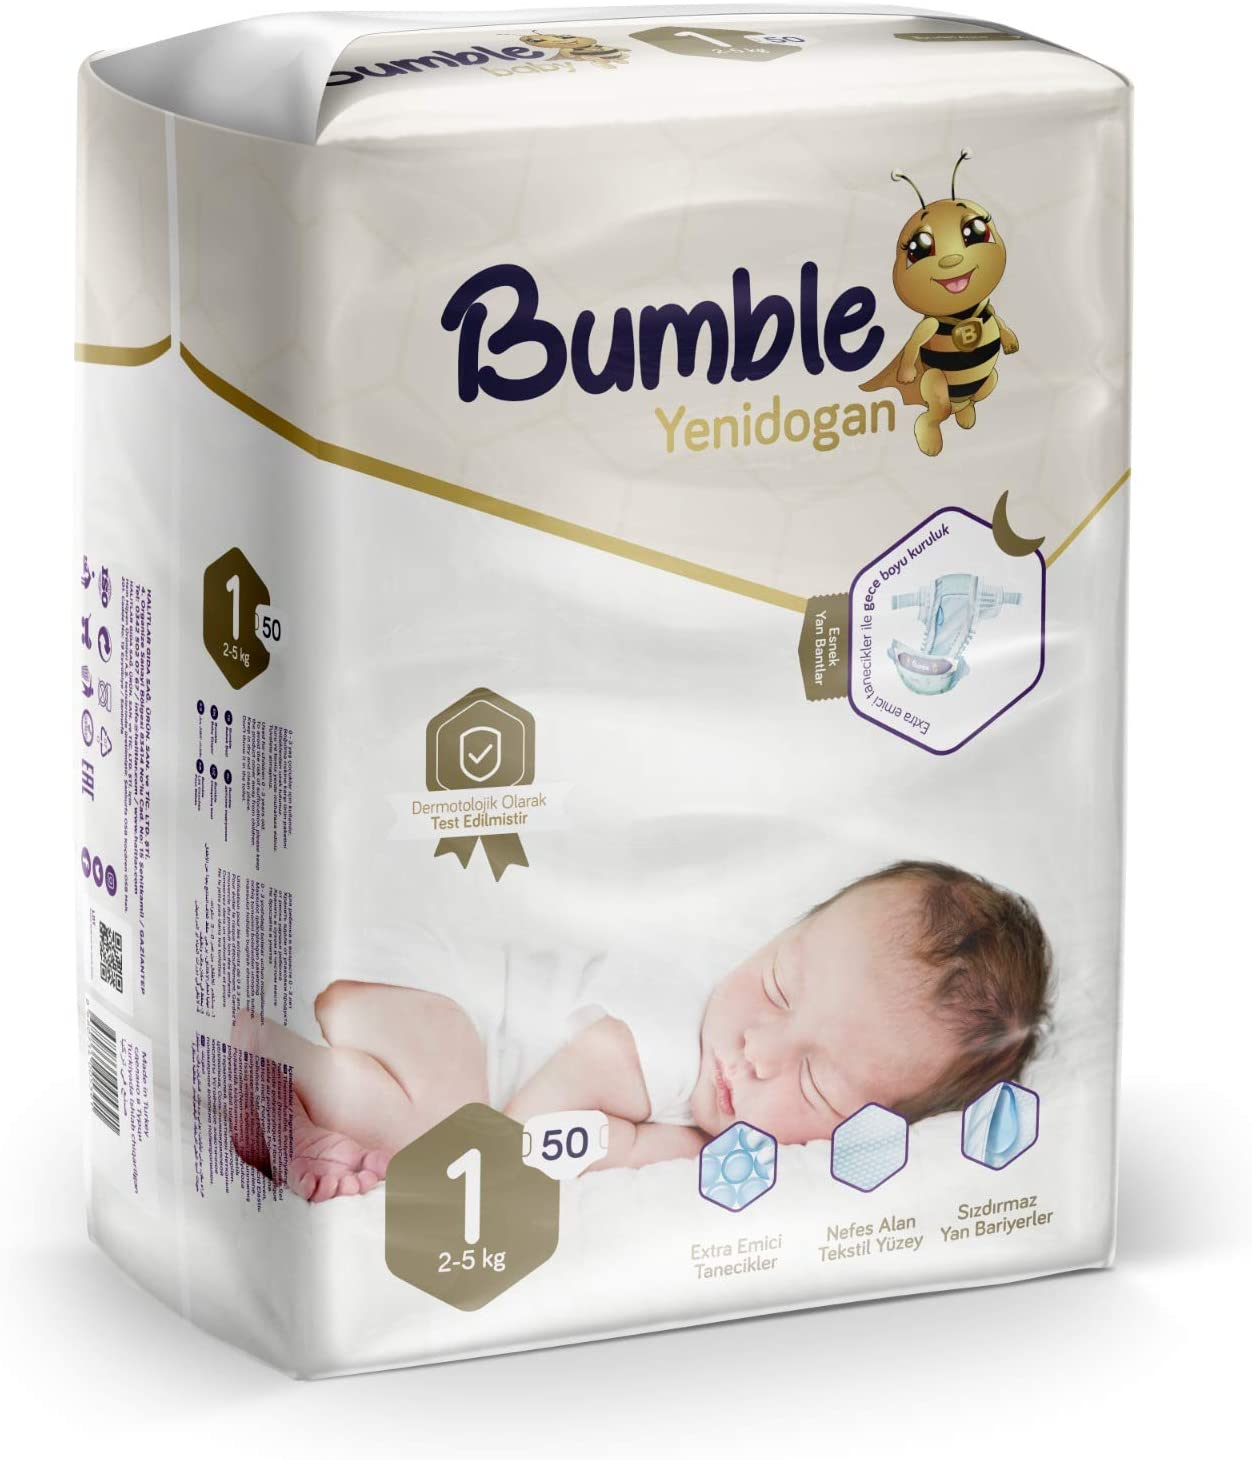 Bumble Baby Diapers, Size 1 2-5KG 50 Counts drip Proof barriers, Textile Surfaces, Absorbing Particles, Ultra-Flexible Side Grip Strips (1)